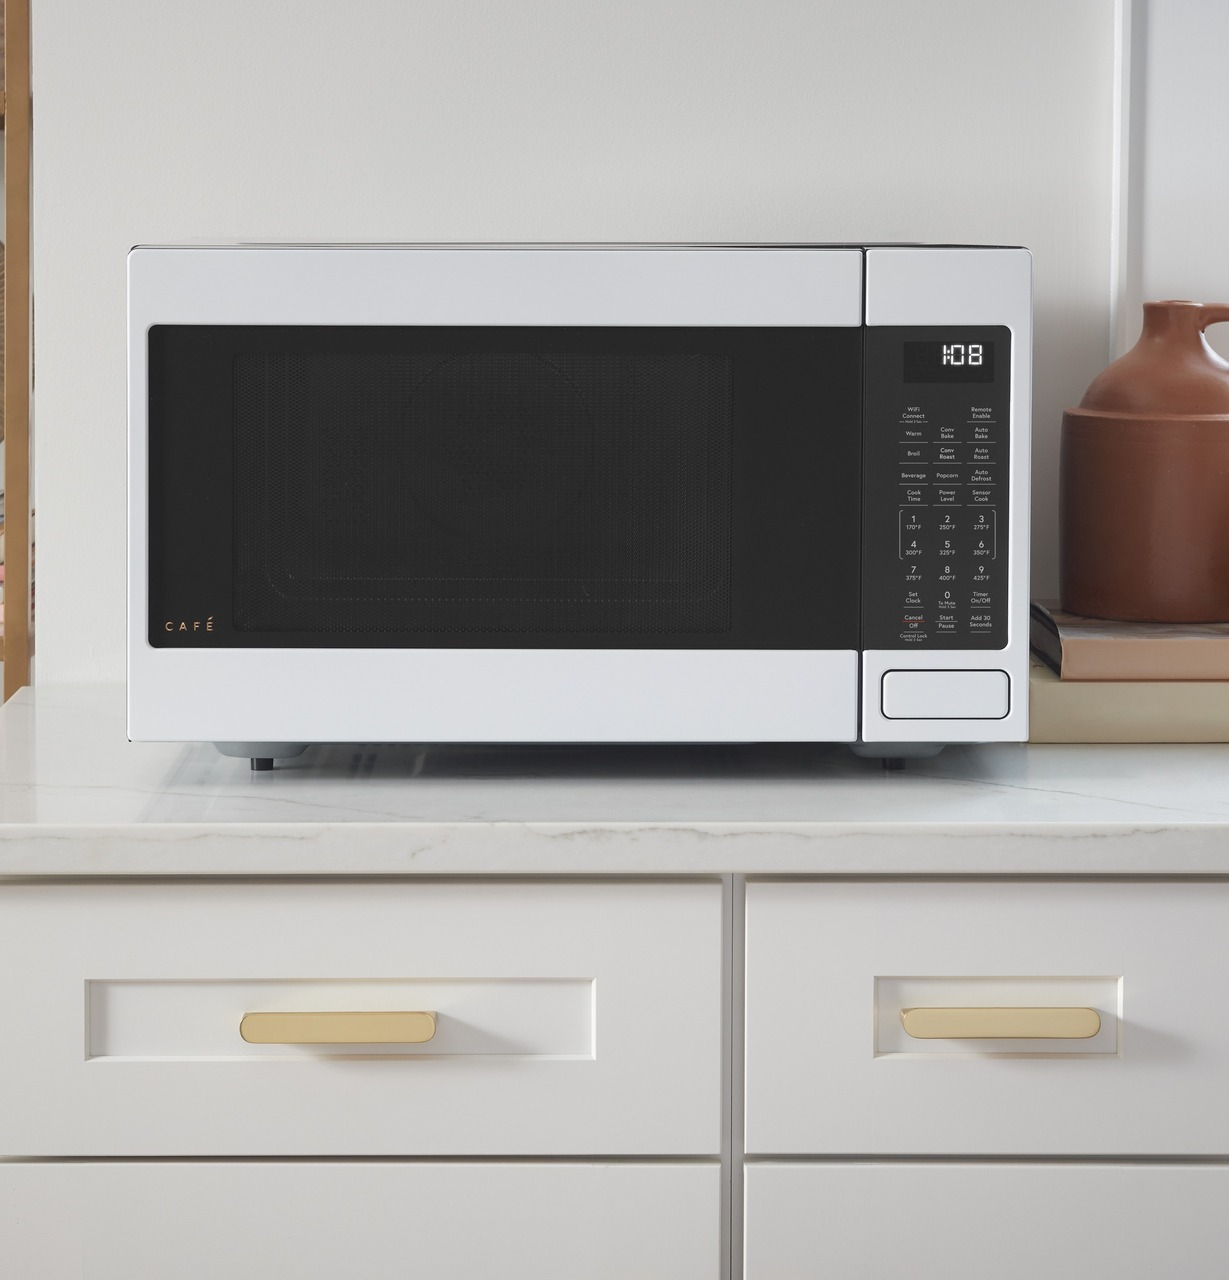 cafe 1 5 cu ft smart countertop convection microwave oven ceb515p4nwm